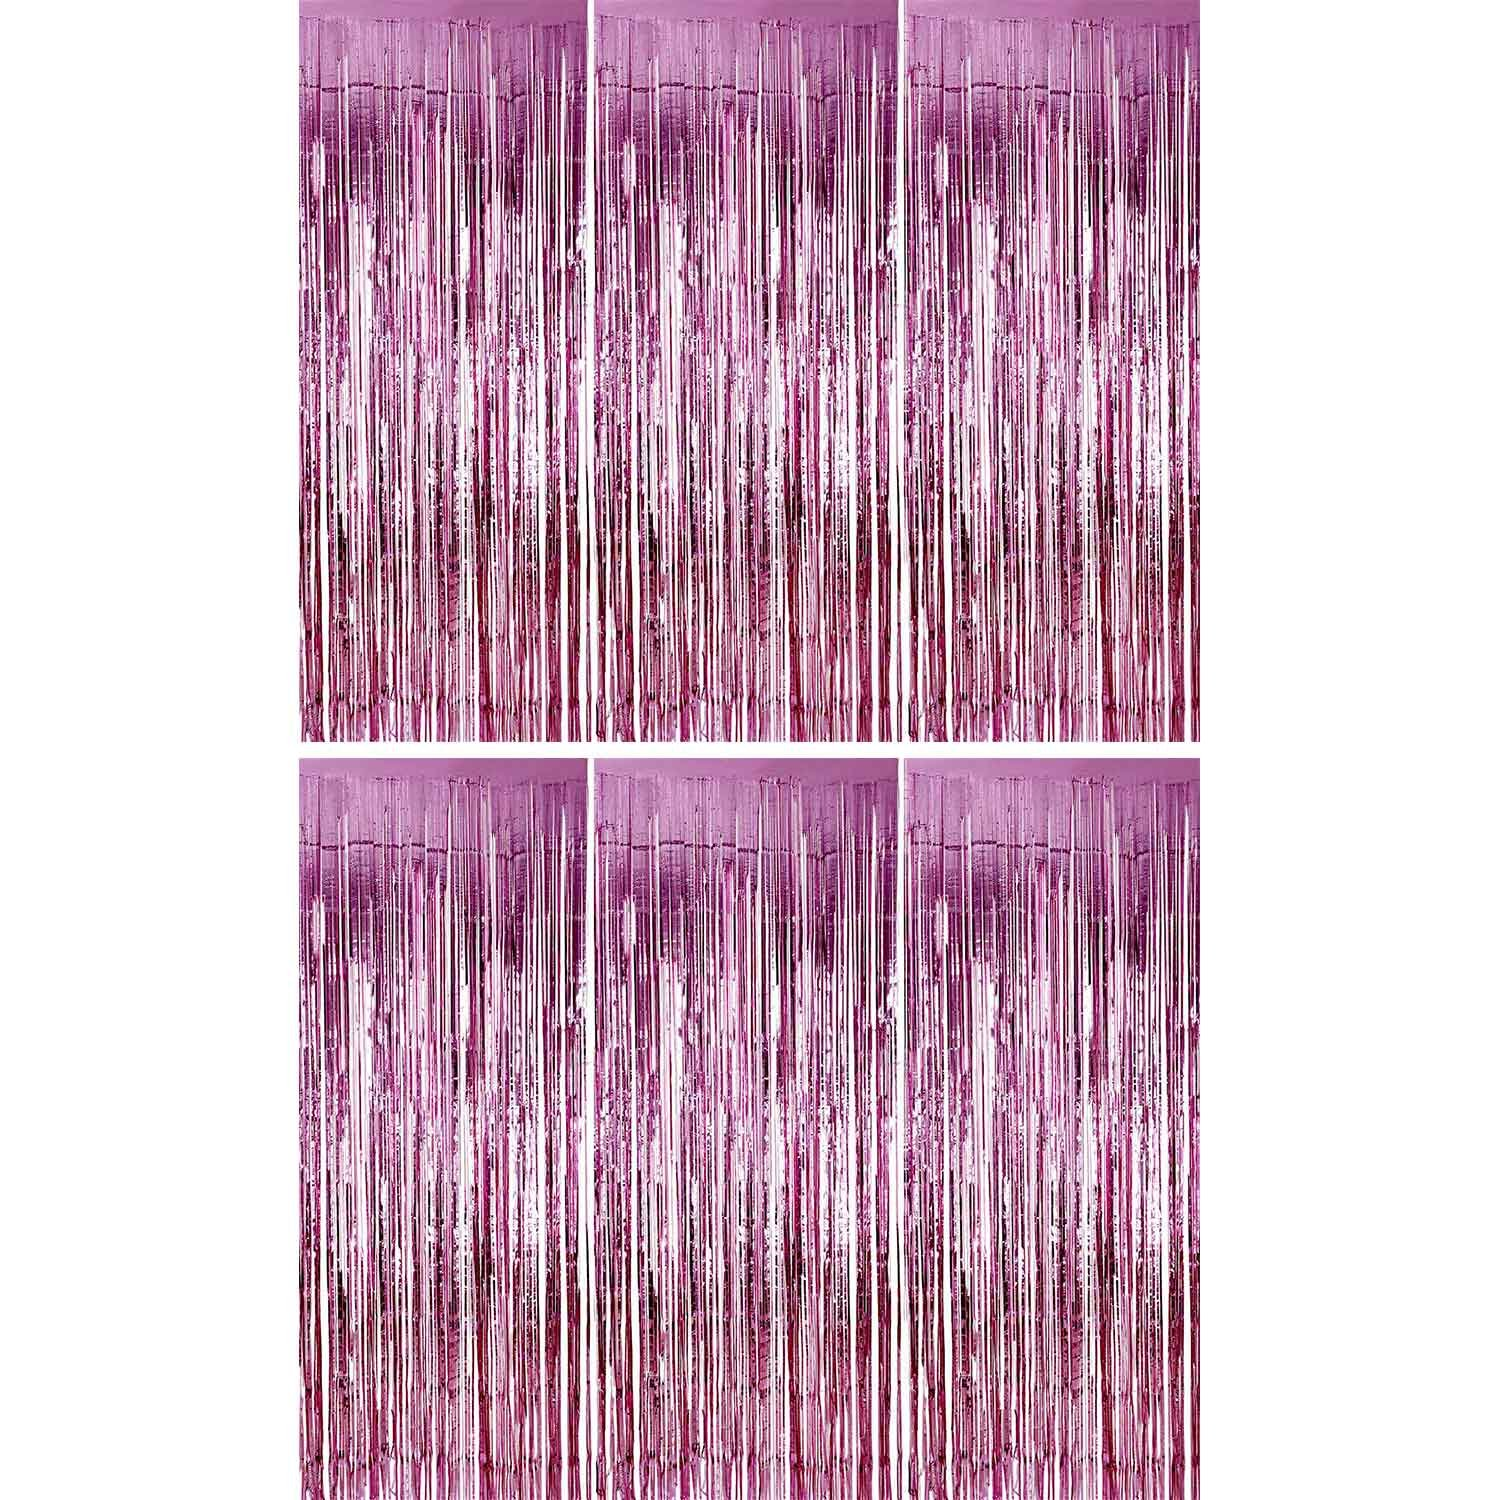 Sumind 6 Pack Foil Curtains Backdrop Fringe Tinsel Metallic Curtains Photo Backdrop for Wedding Birthday Party Stage Decor (Pink)